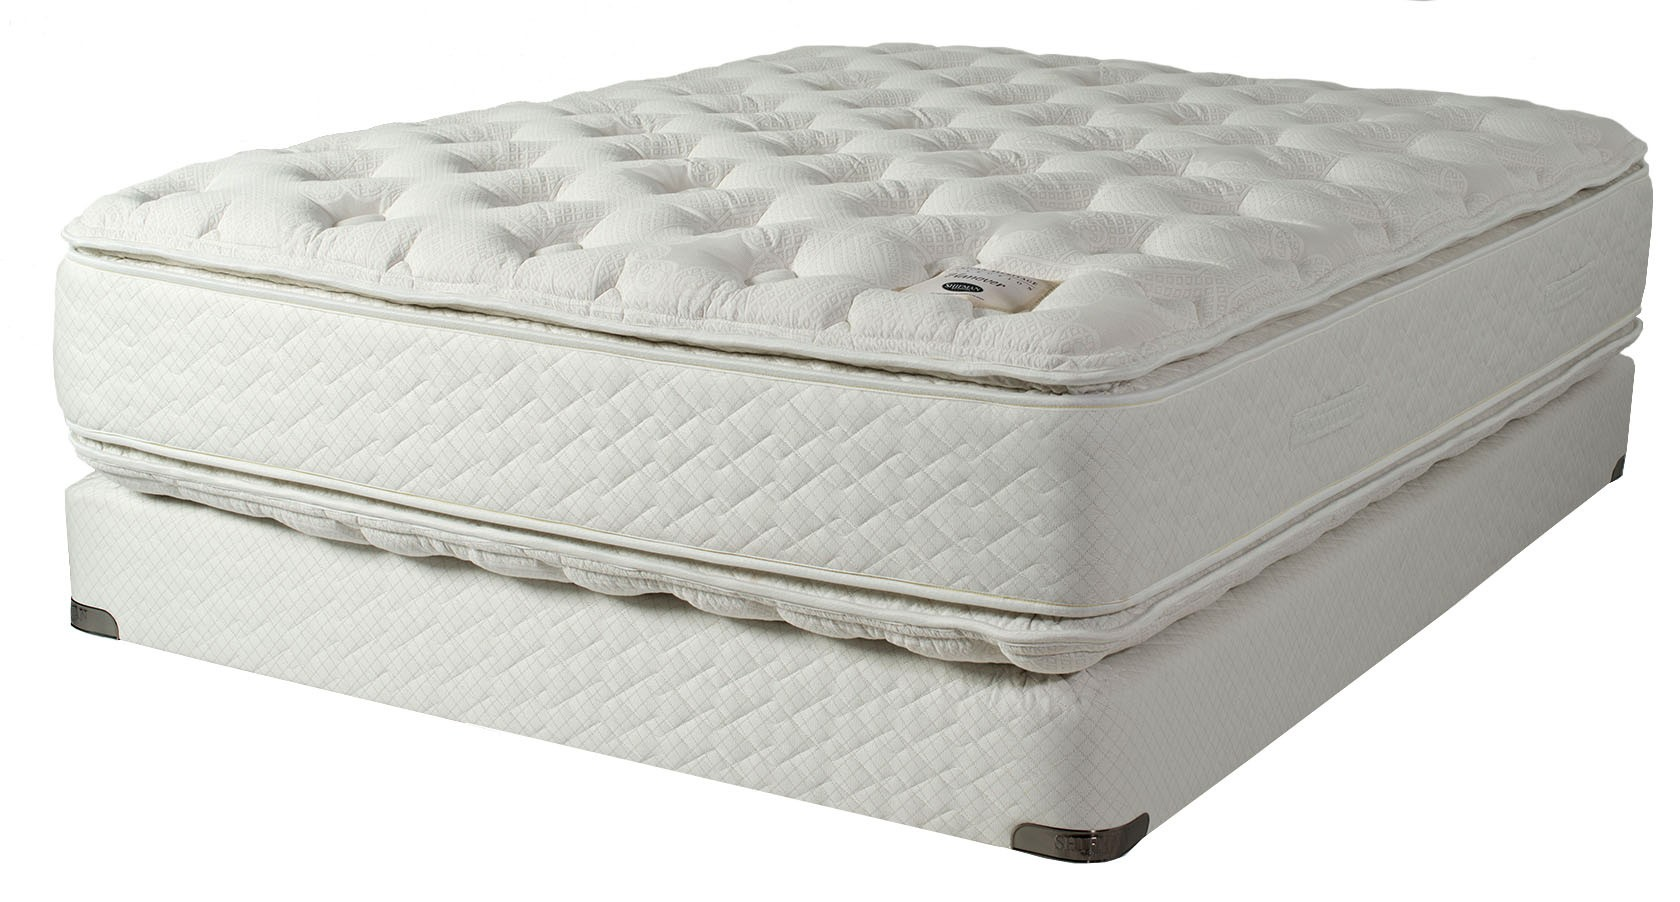 Shifman Hanover Plush PT Mattress Set